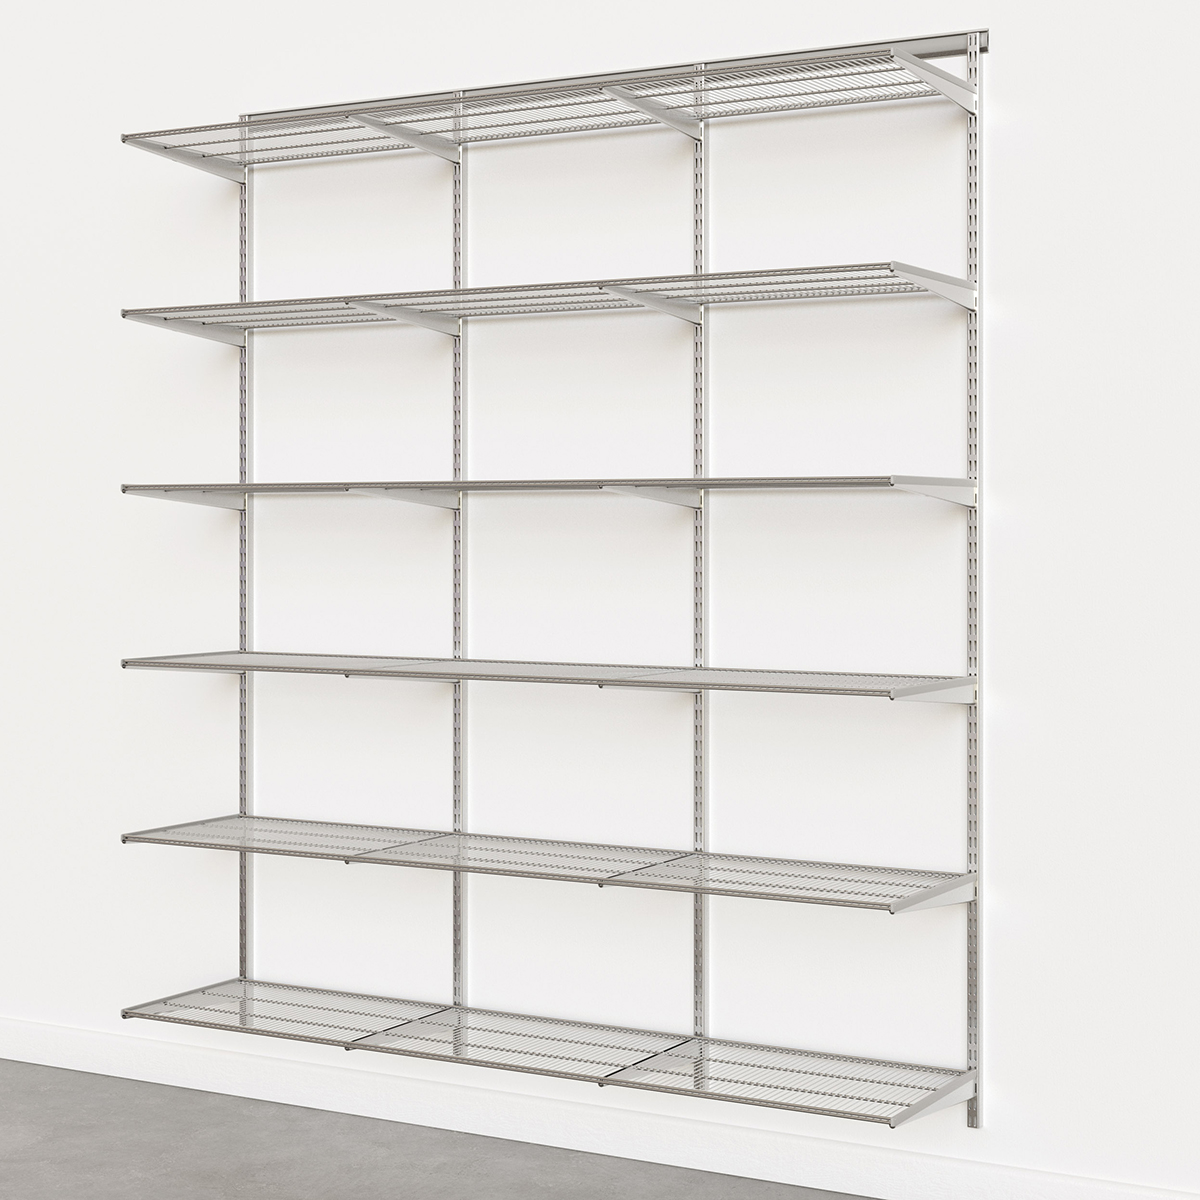 Elfa Classic Platinum 6' Basic Shelving Units for Anywhere